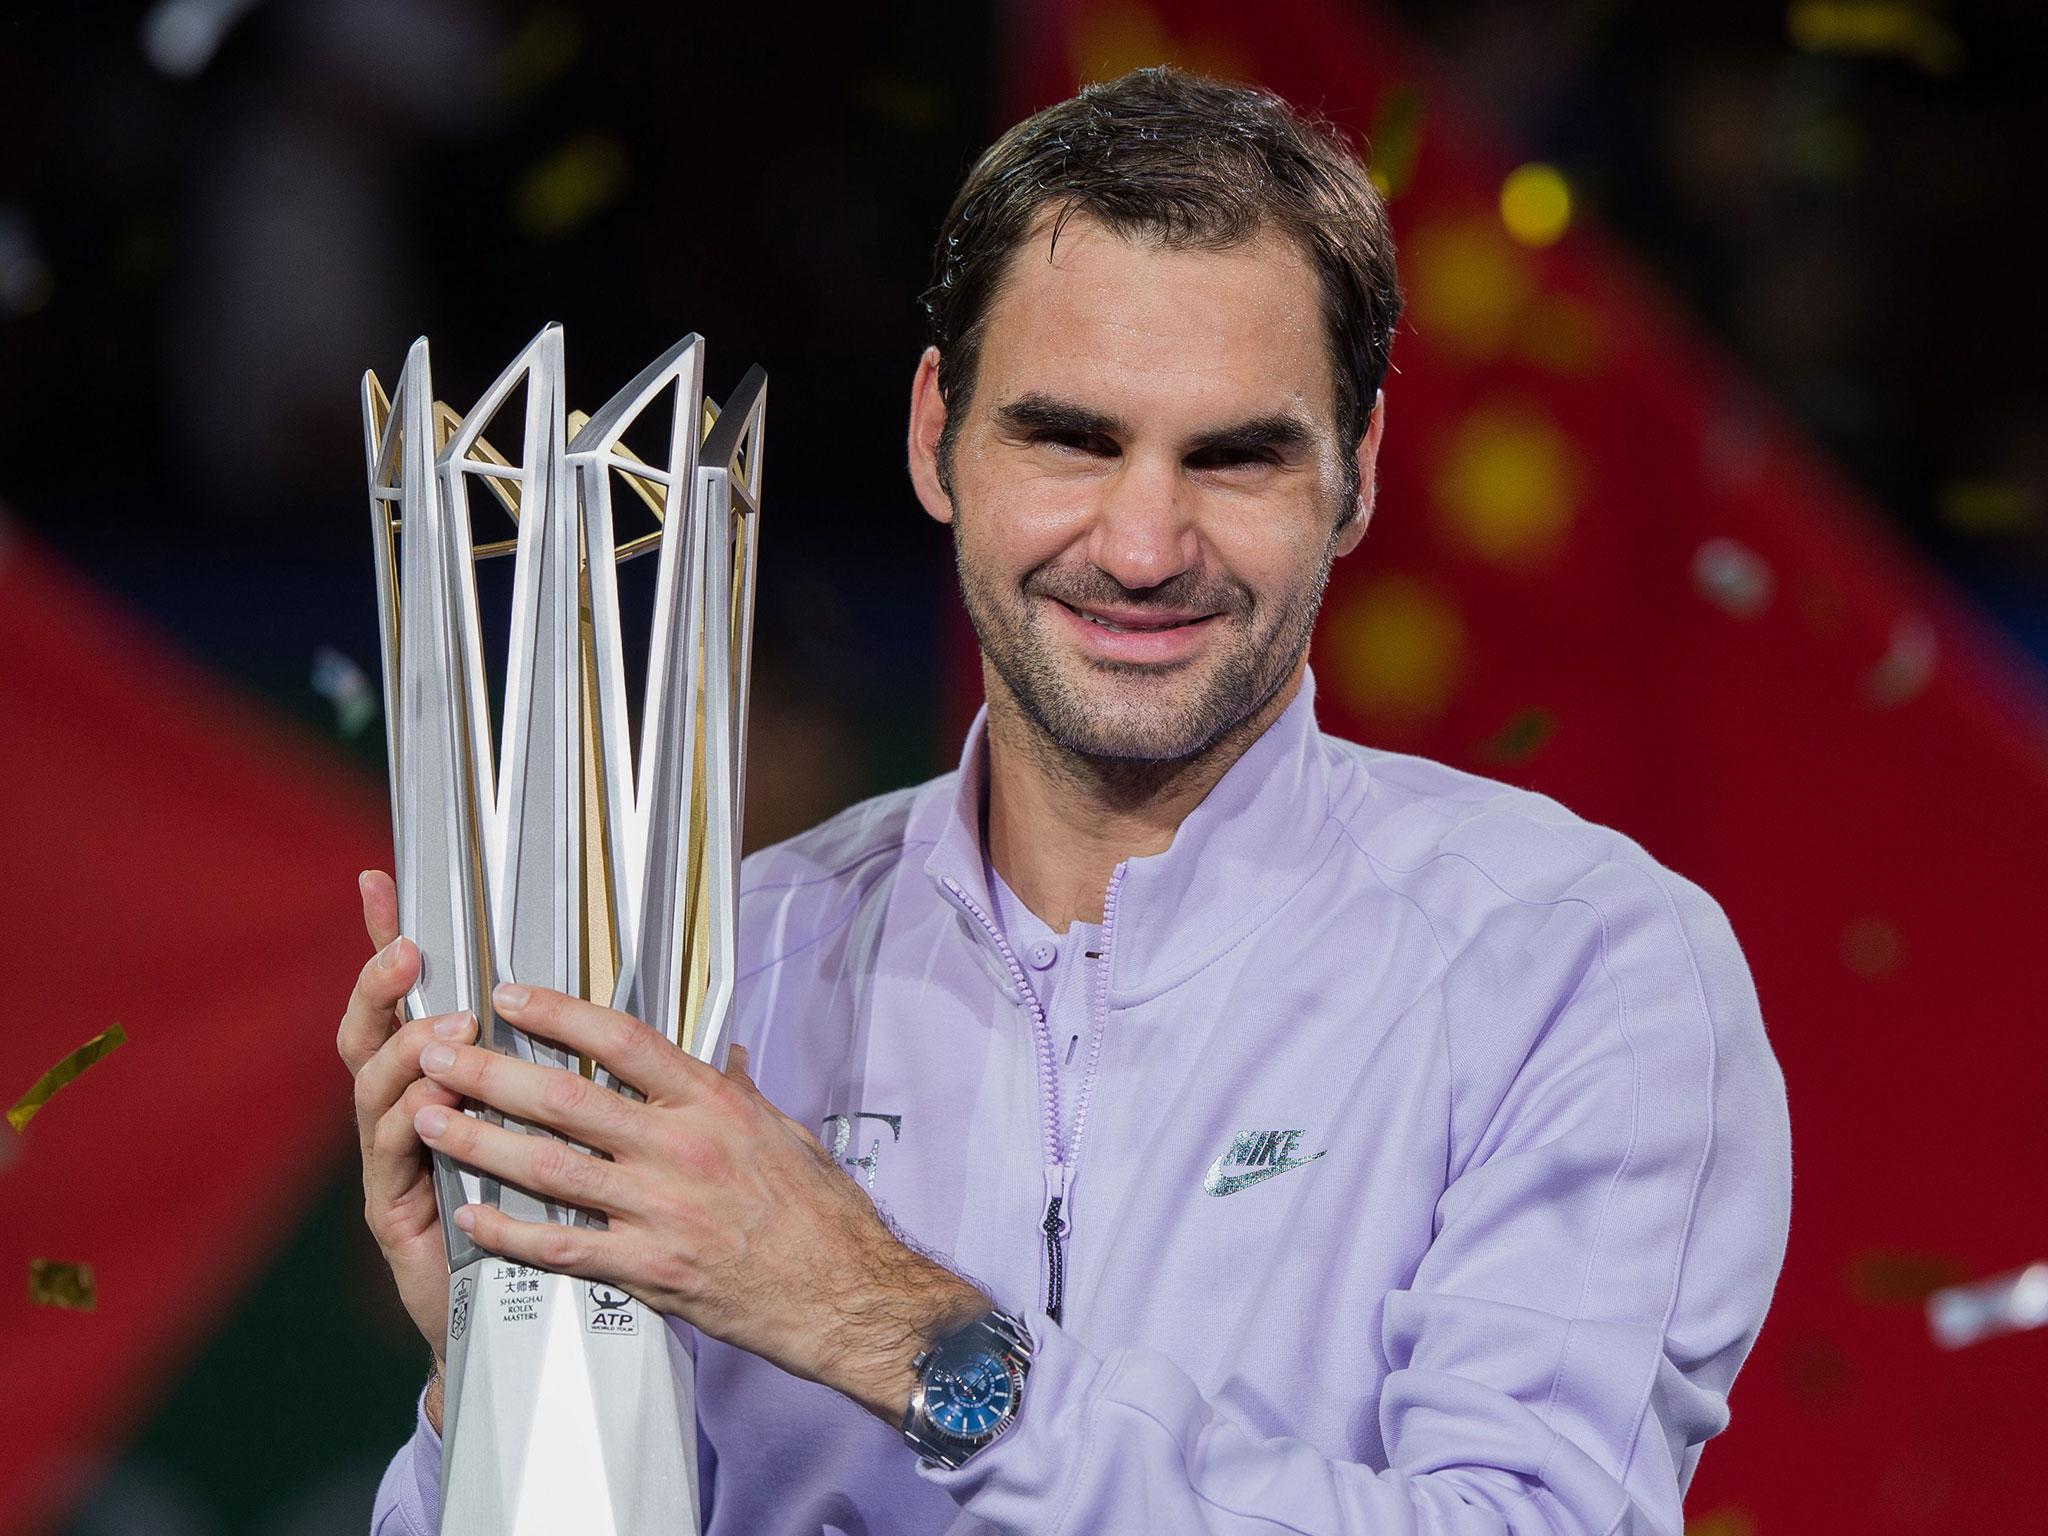 Roger Federer beats Rafael Nadal in straight sets to win Shanghai